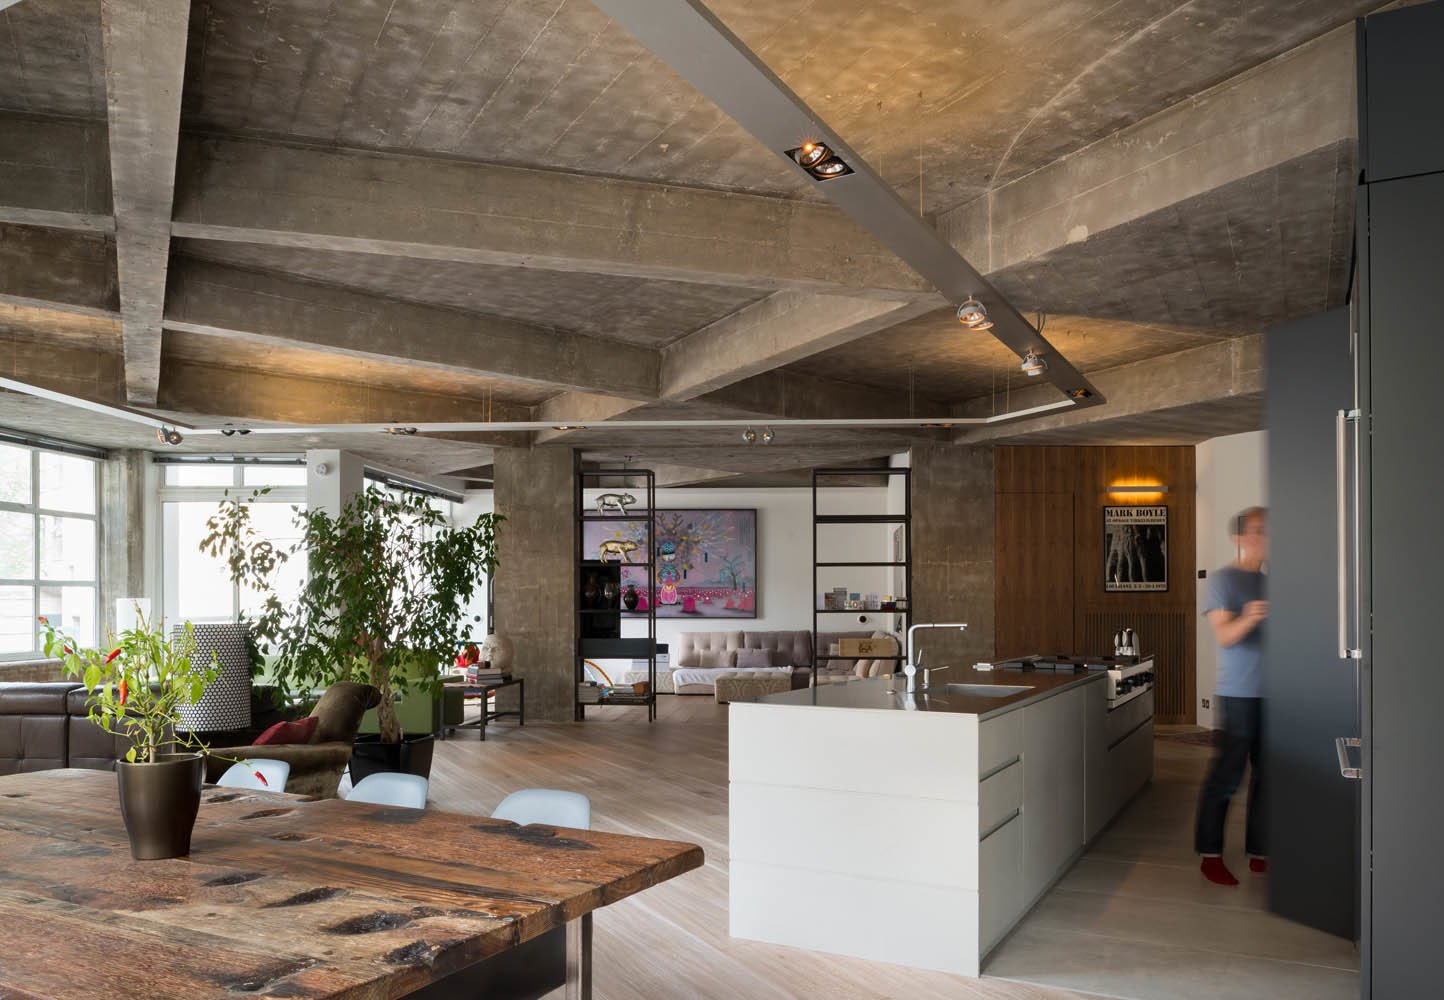 Inside Out Architecture renovated an apartment in the Clerkenwell section of central London, removing interior walls to create an open, loft-like living space. Photo by Jim Stephenson. Tagged: Kitchen and White Cabinet.  Photo 1 of 8 in Renovation Opens Up a London Apartment